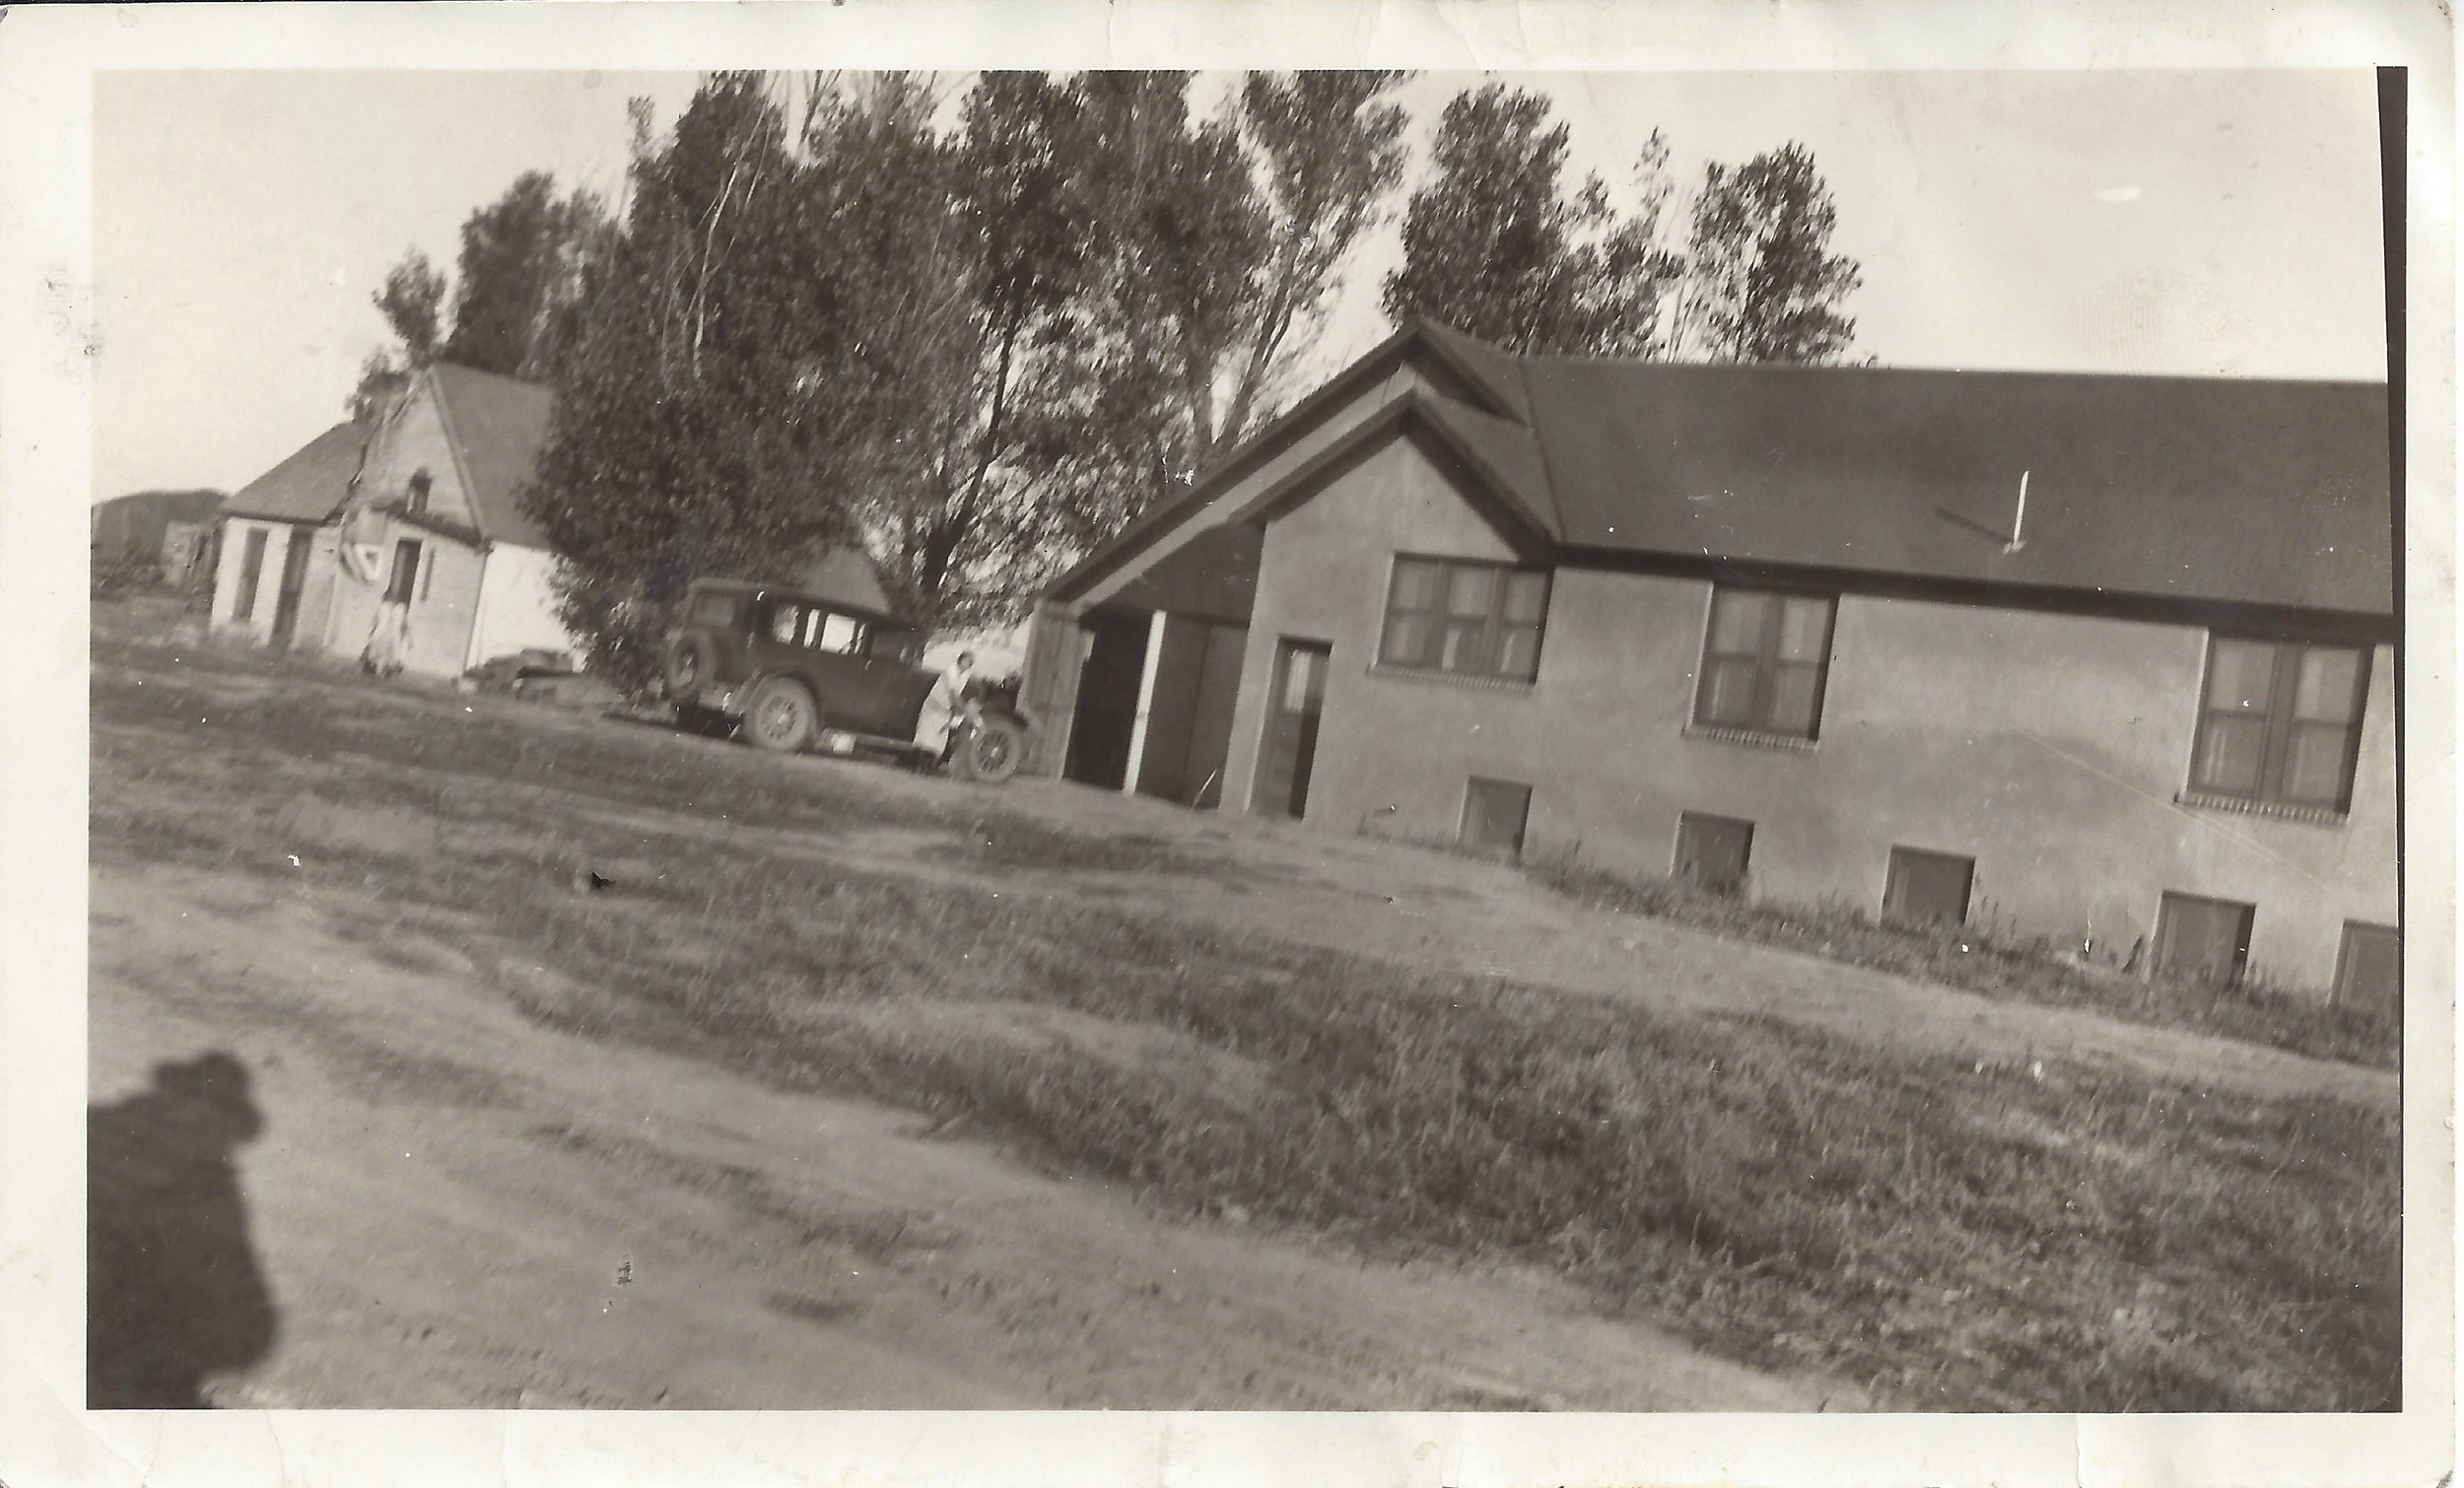 View of the south side of the stucco farm house with the old house still remaining to the west. Mabel and Wally Firestien by the car.